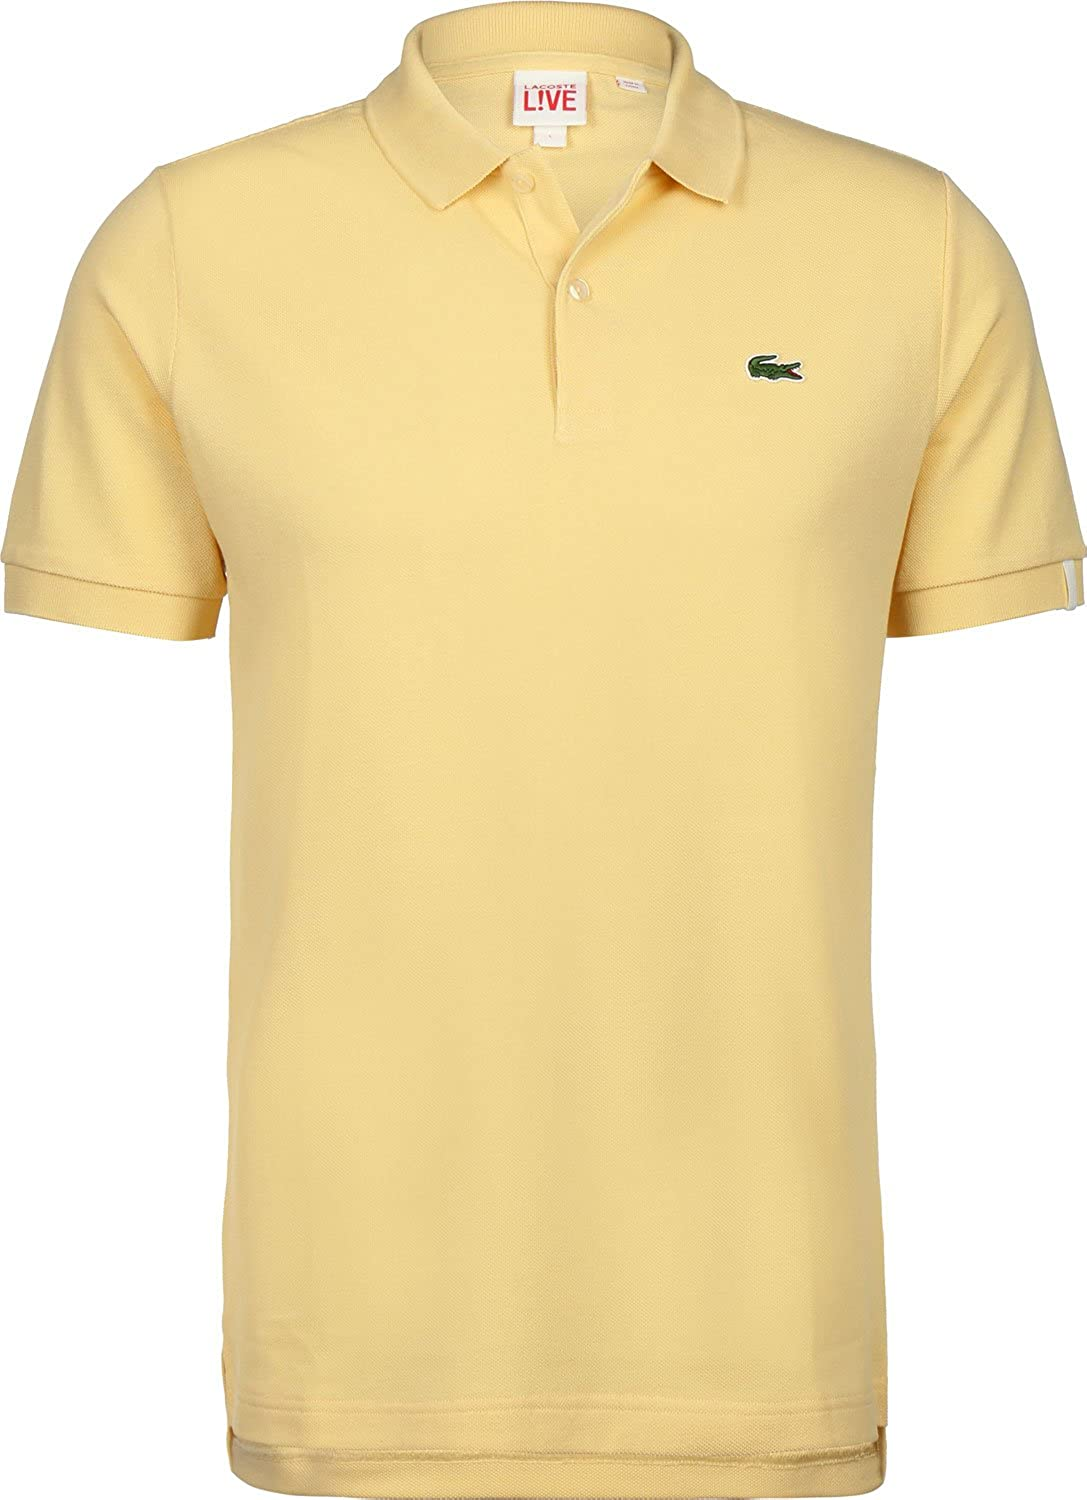 Lacoste Polo PH8405 Amarillo XXS Amarillo: Amazon.es: Ropa y ...